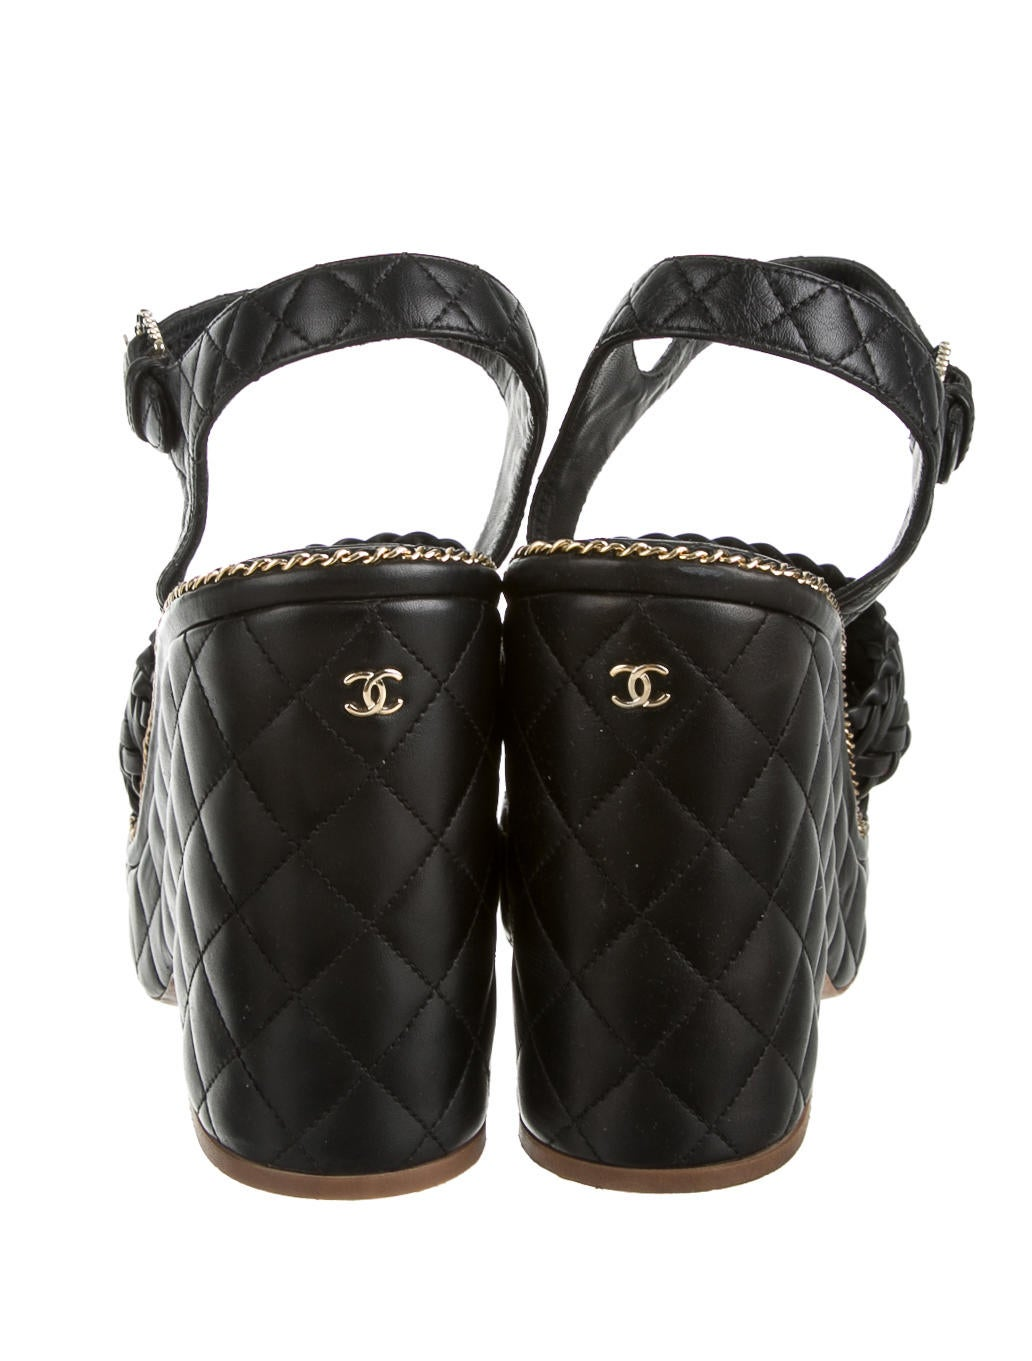 chanel wedges shoes cha77345 the realreal